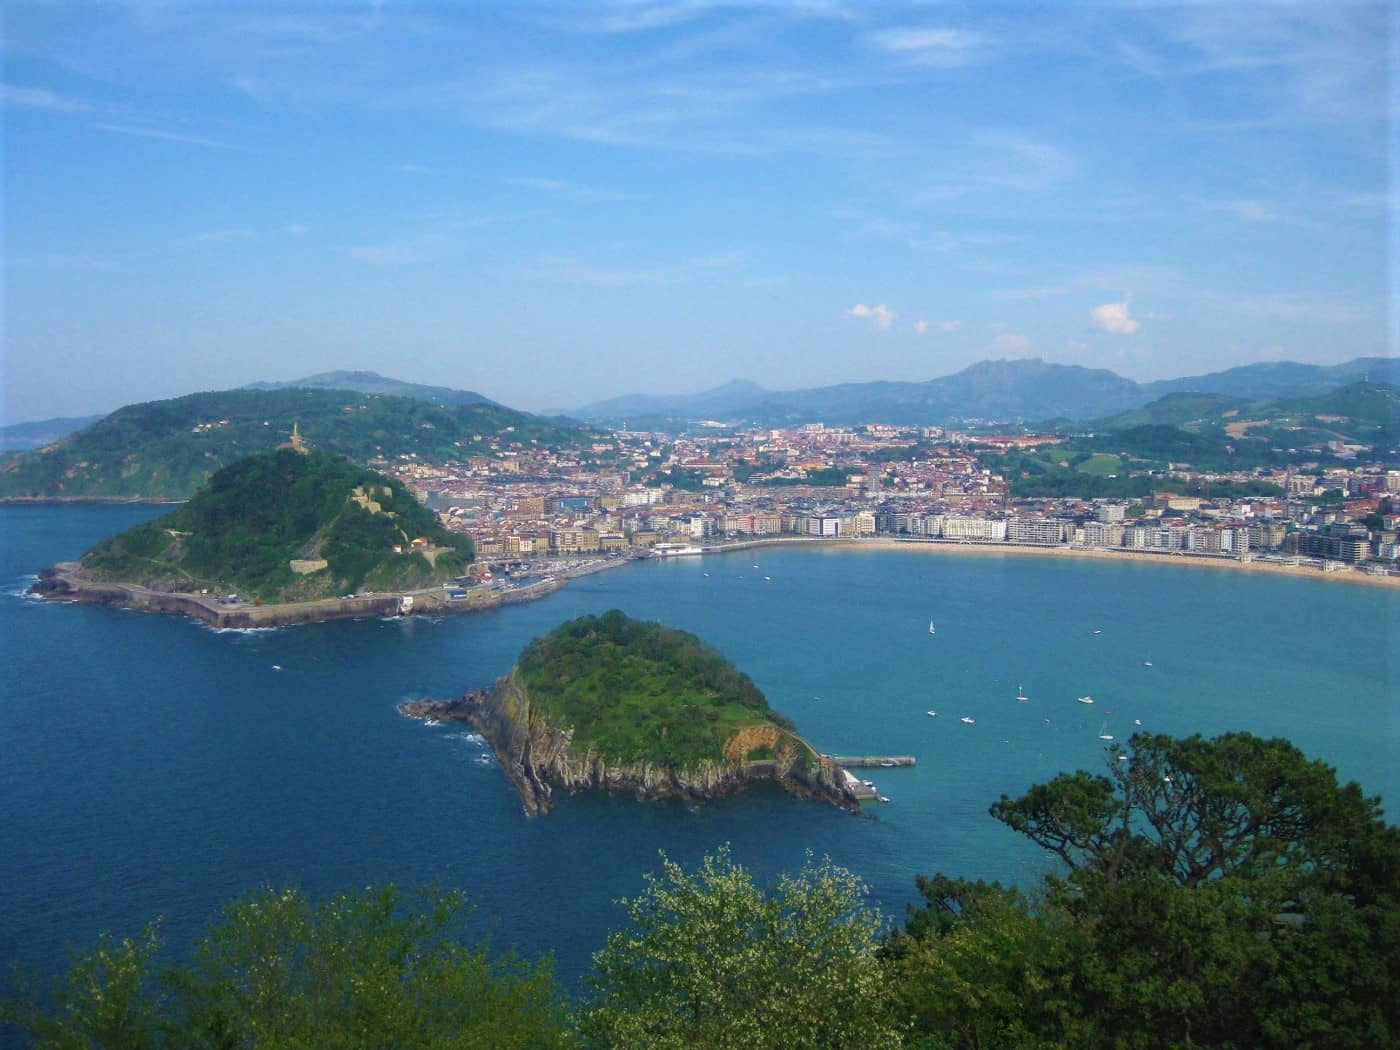 View of San Sebastian from Monte Igueldo